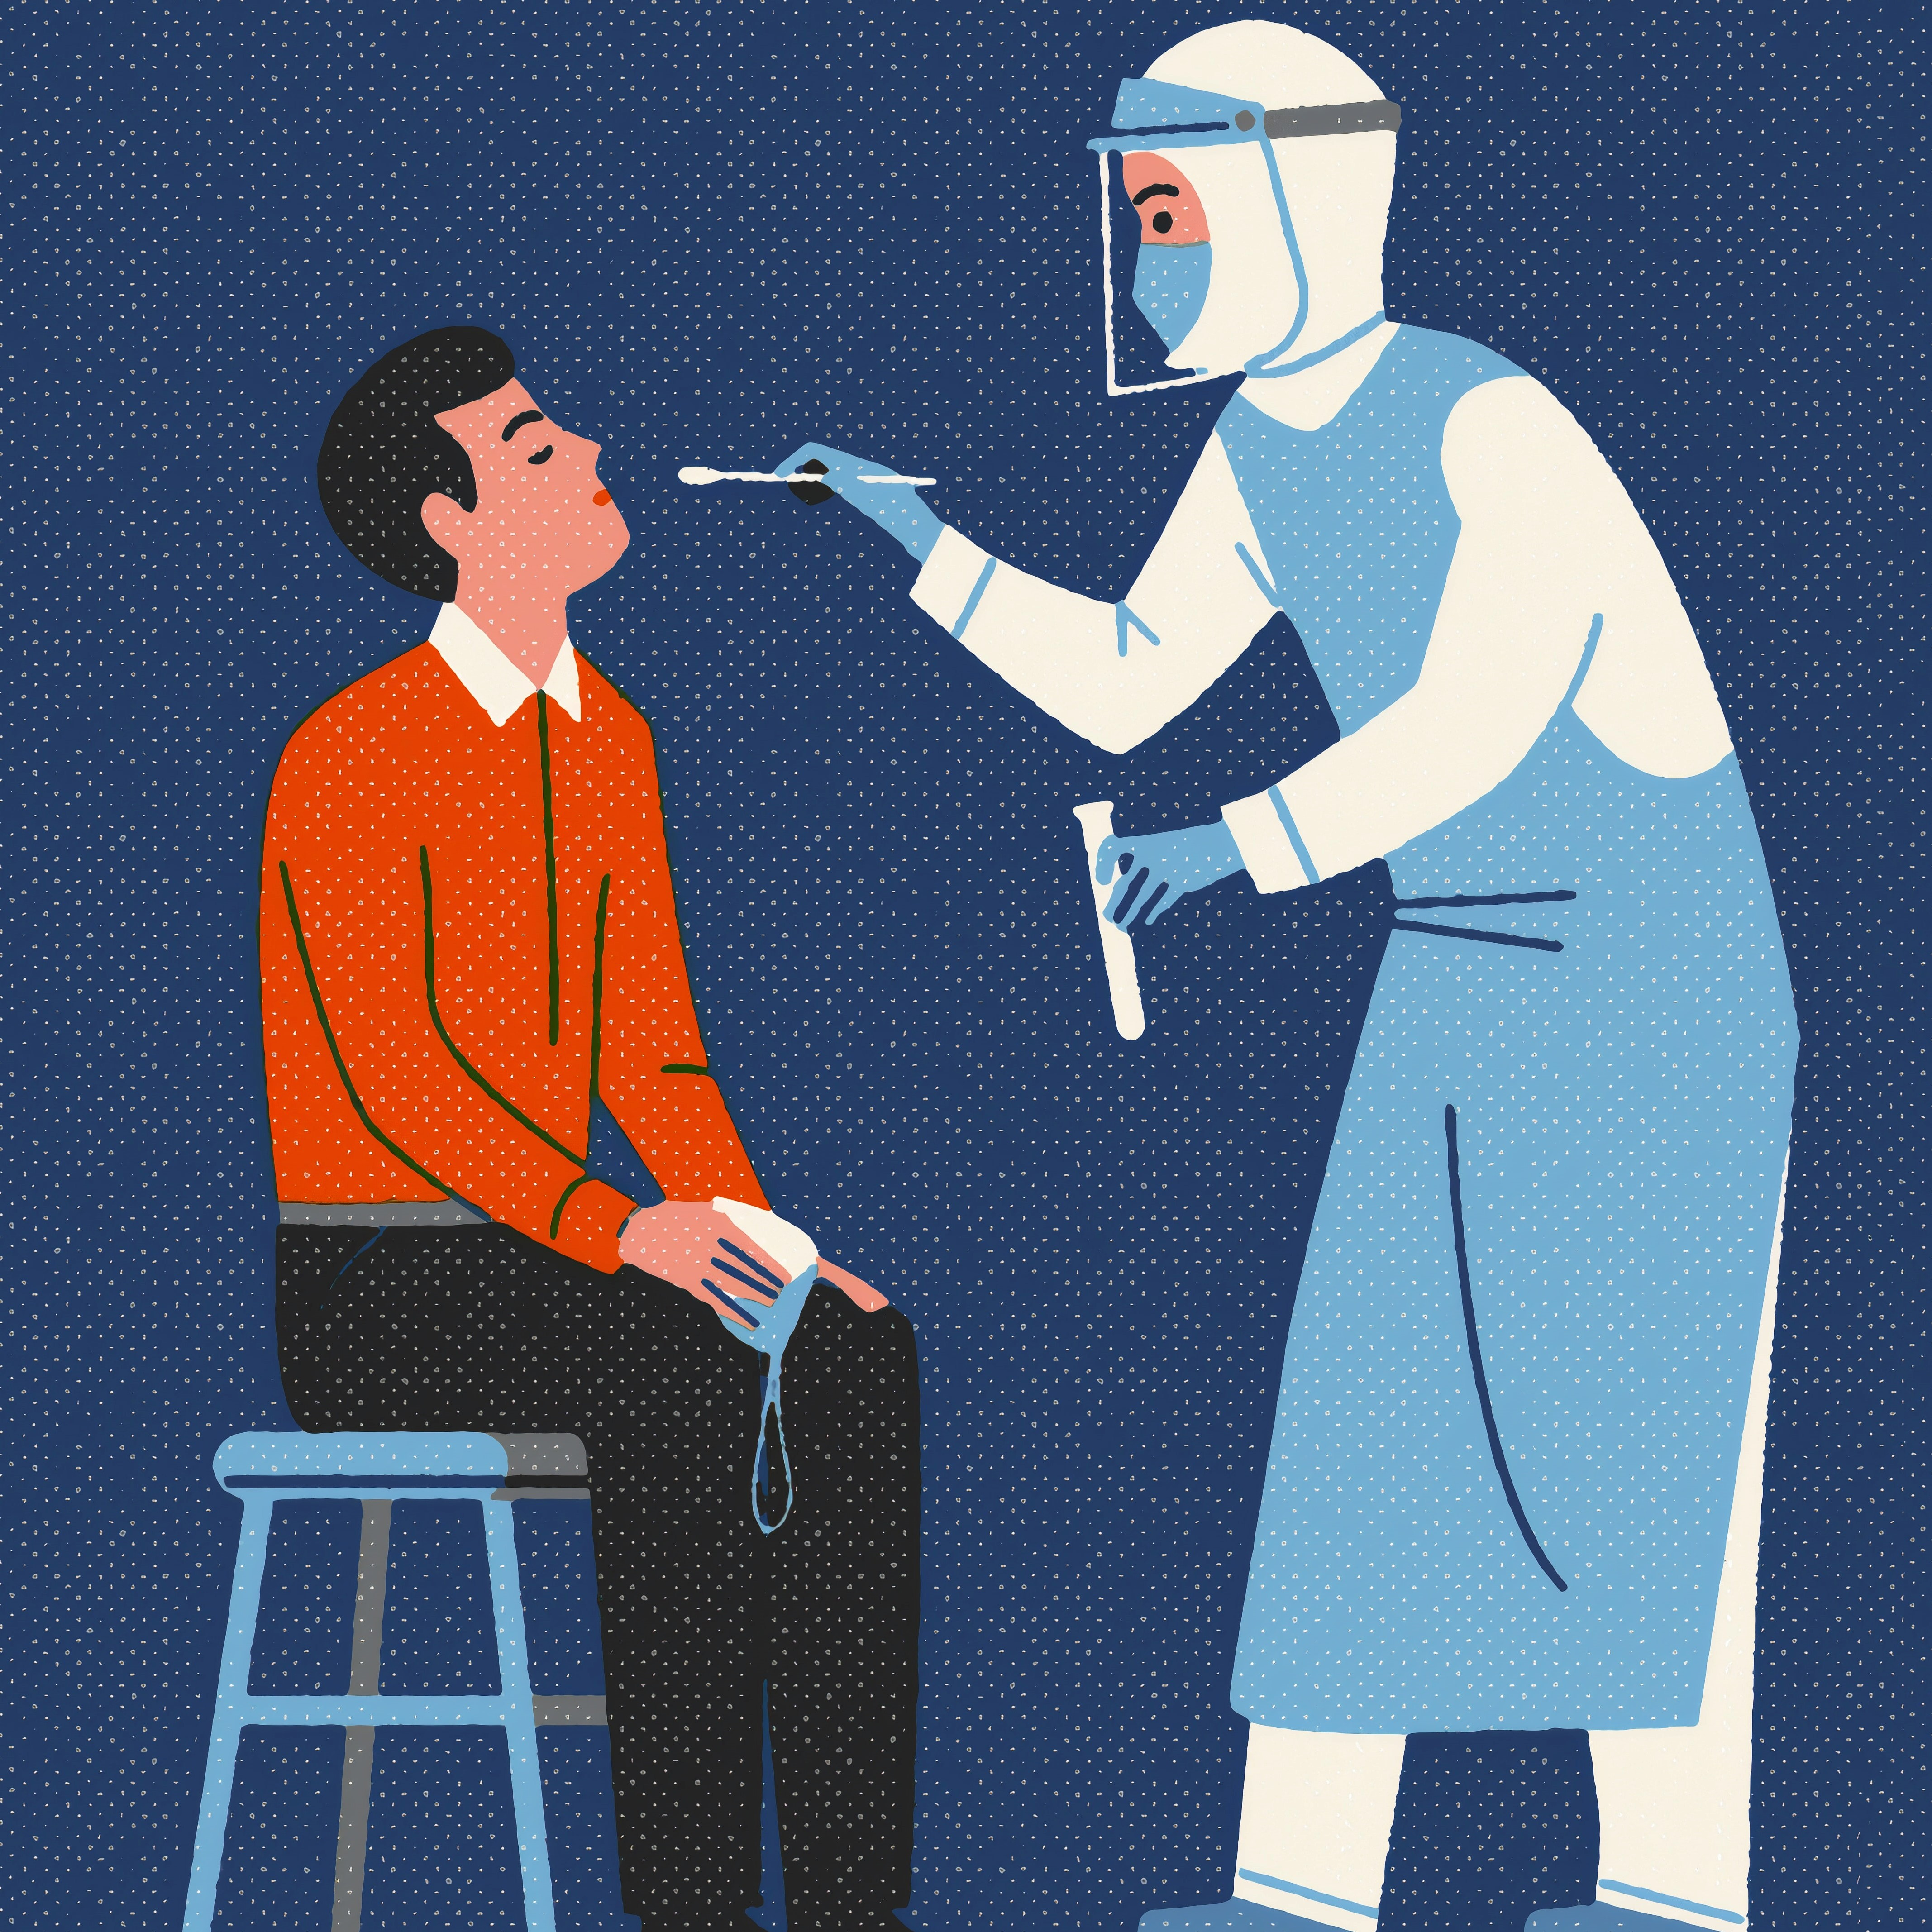 SWAB TEST. Patient and medical supervisor preparing for a COVID-19 nasal swab test. Image created by Russell Tate.